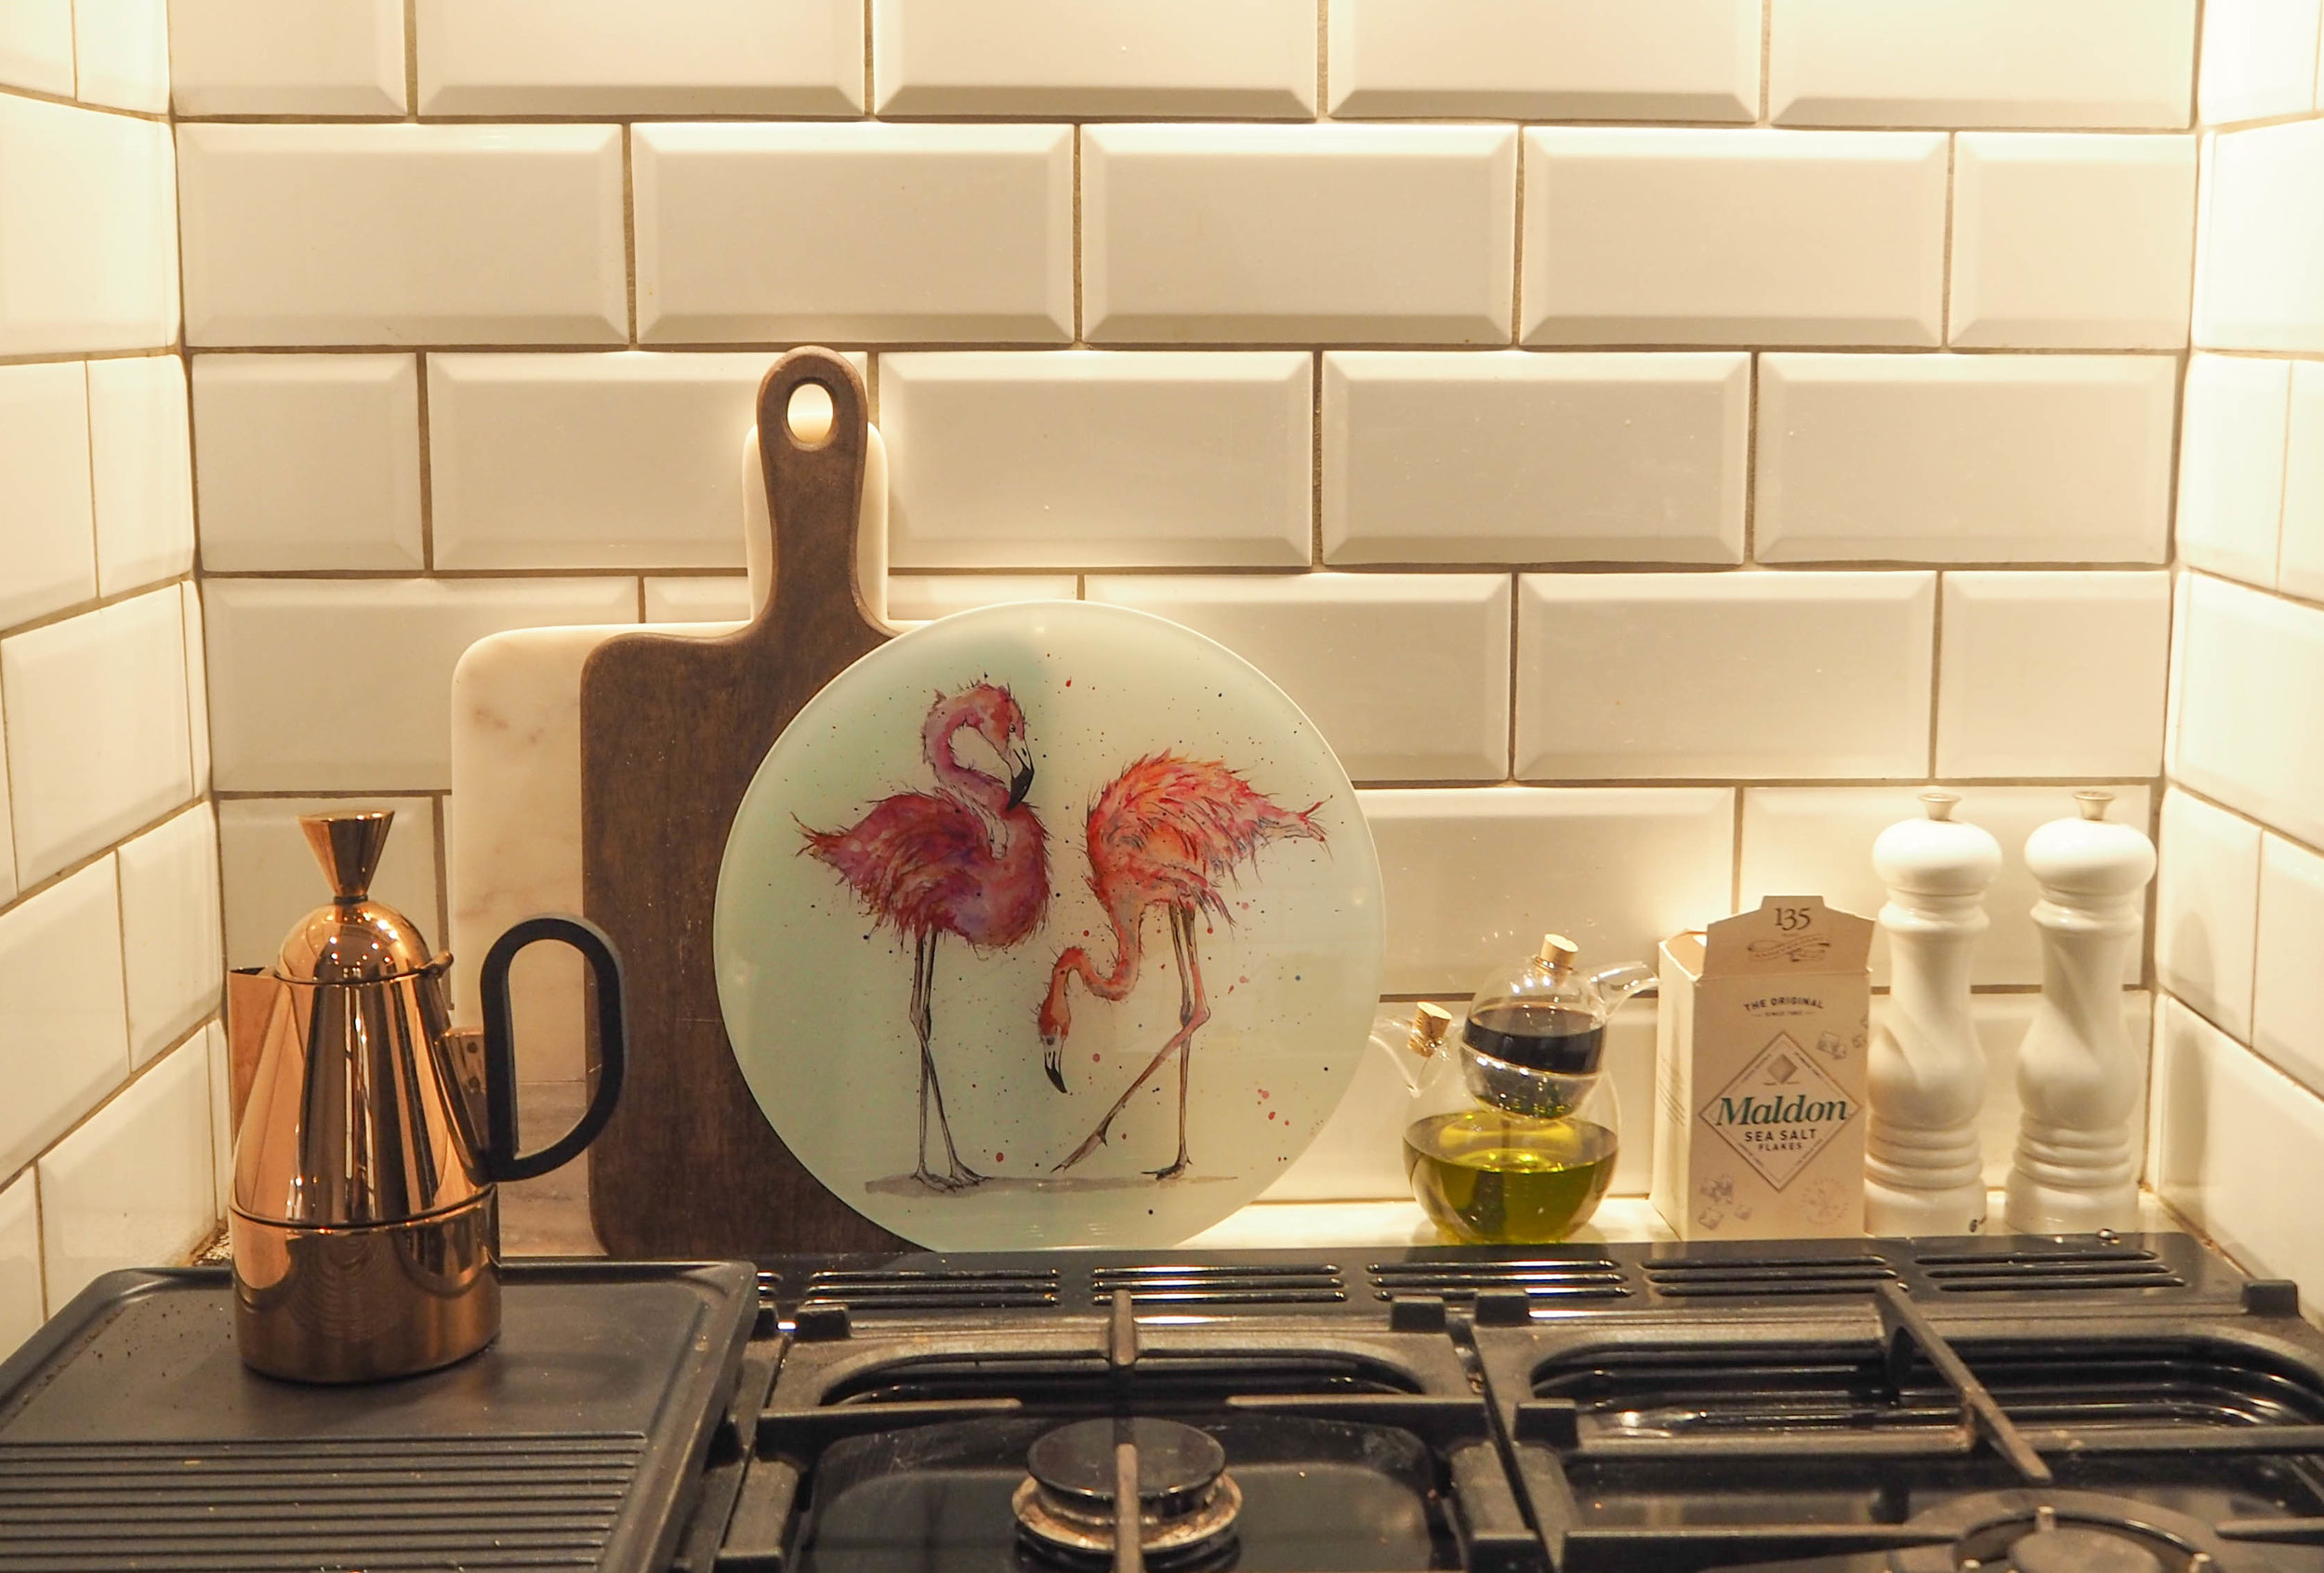 Sarah boddy - Flamingo Glass worktop saver